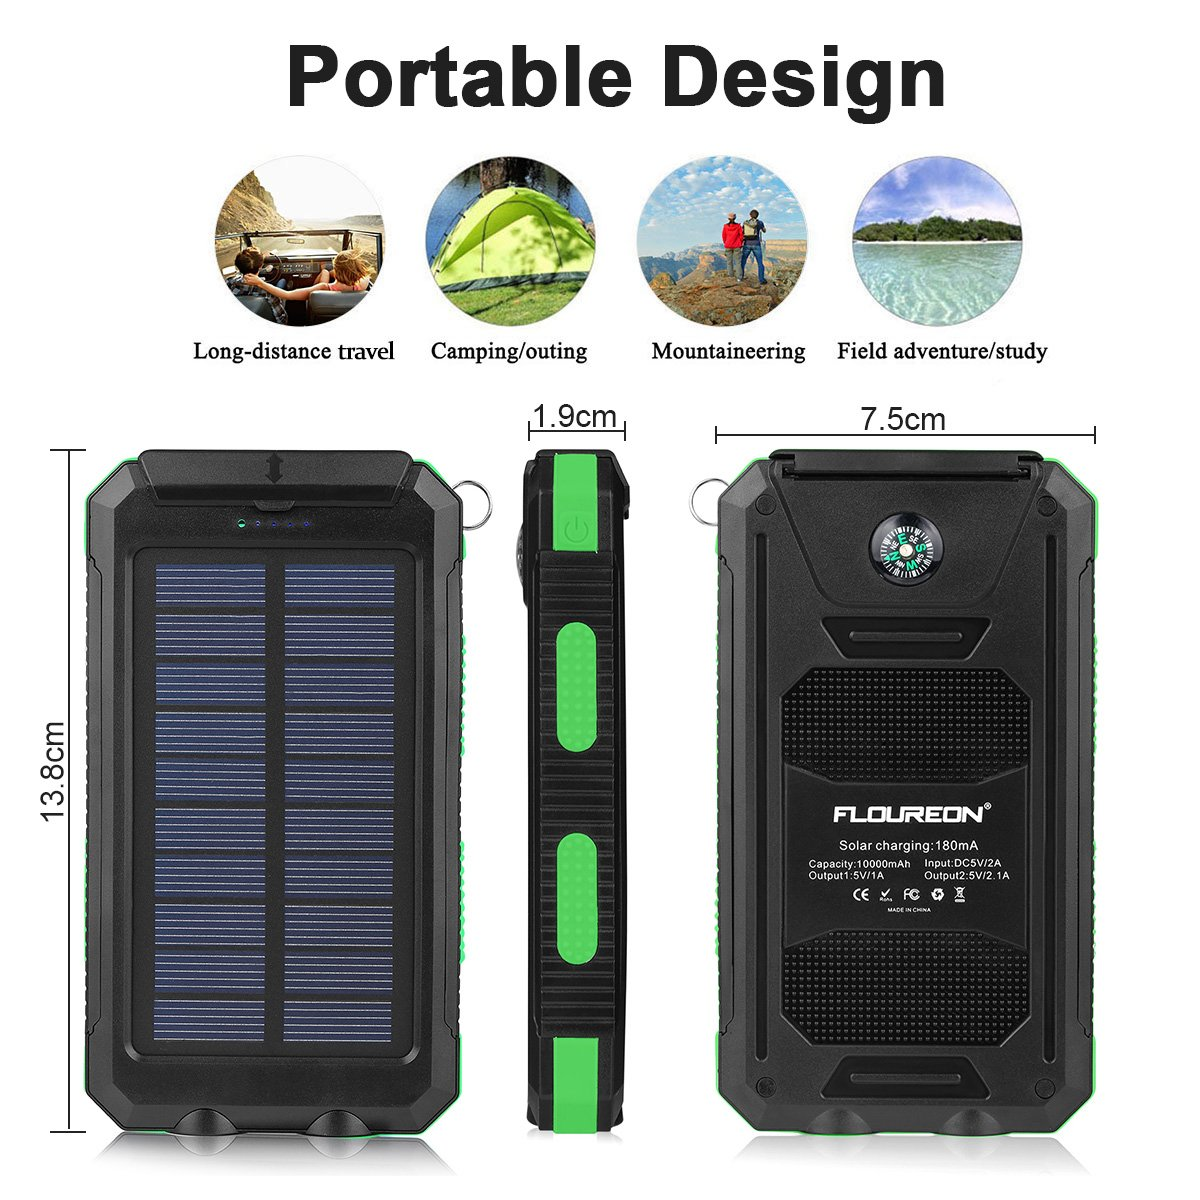 FLOUREON 10,000mAh Solar Charger Power Bank Portable Solar Powered Phone Charger with Dual LED Flashlight Super Bright External Battery Charger with Dual 1.0A/2.1A for iPhone 8/ 8 Plus/ X/ 7/ 6s, Samsung Galaxy S8/ S7/ S6 and More (Green)